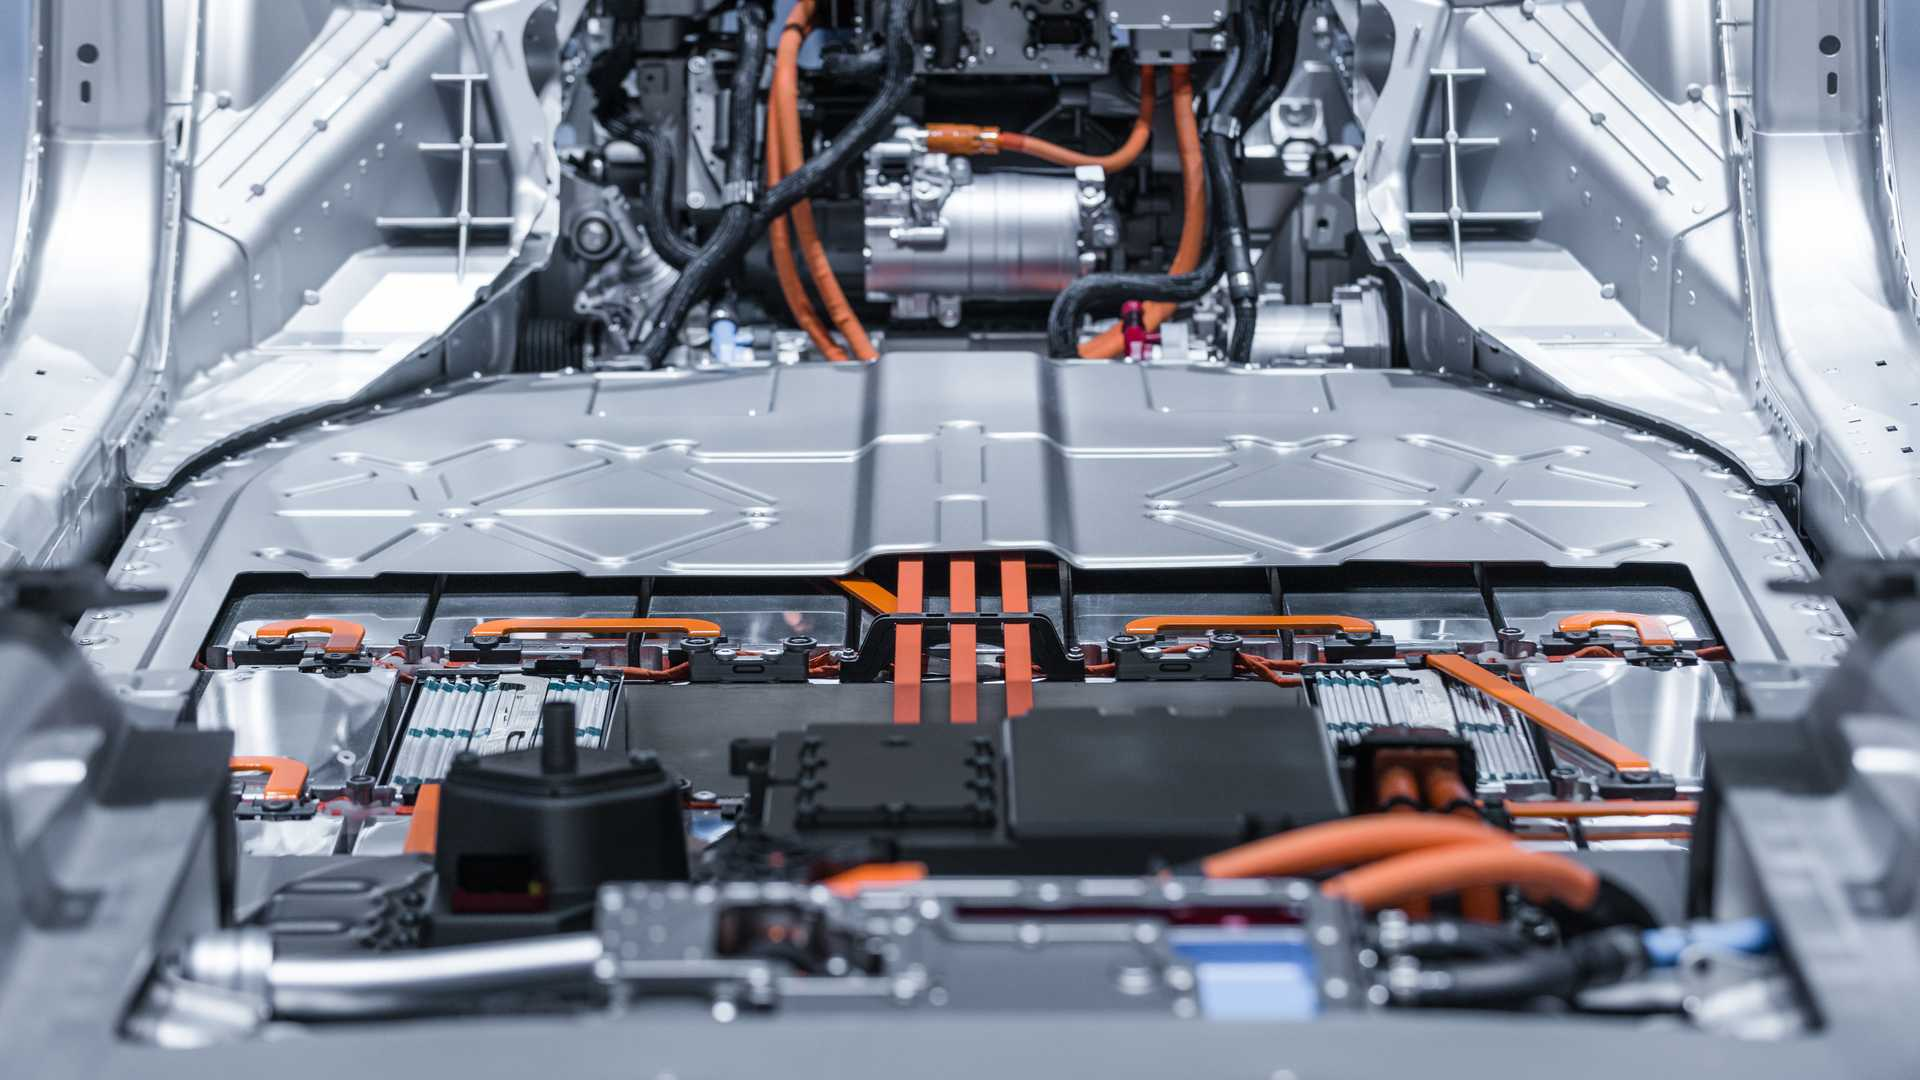 Both Tesla And CATL Are Considering 'Cell-To-Pack' Manufacturing